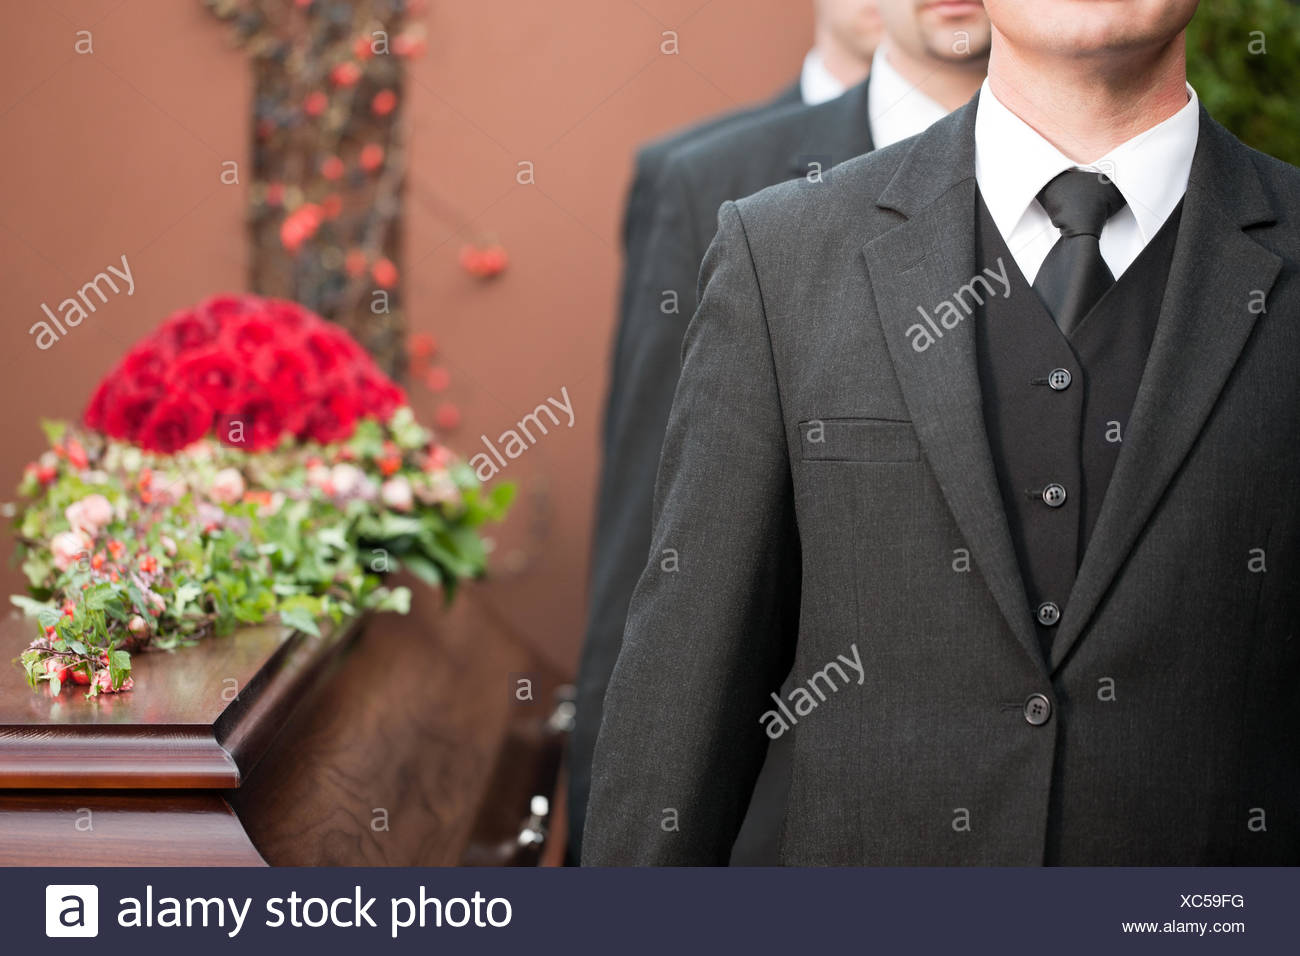 funeral with coffin - Stock Image